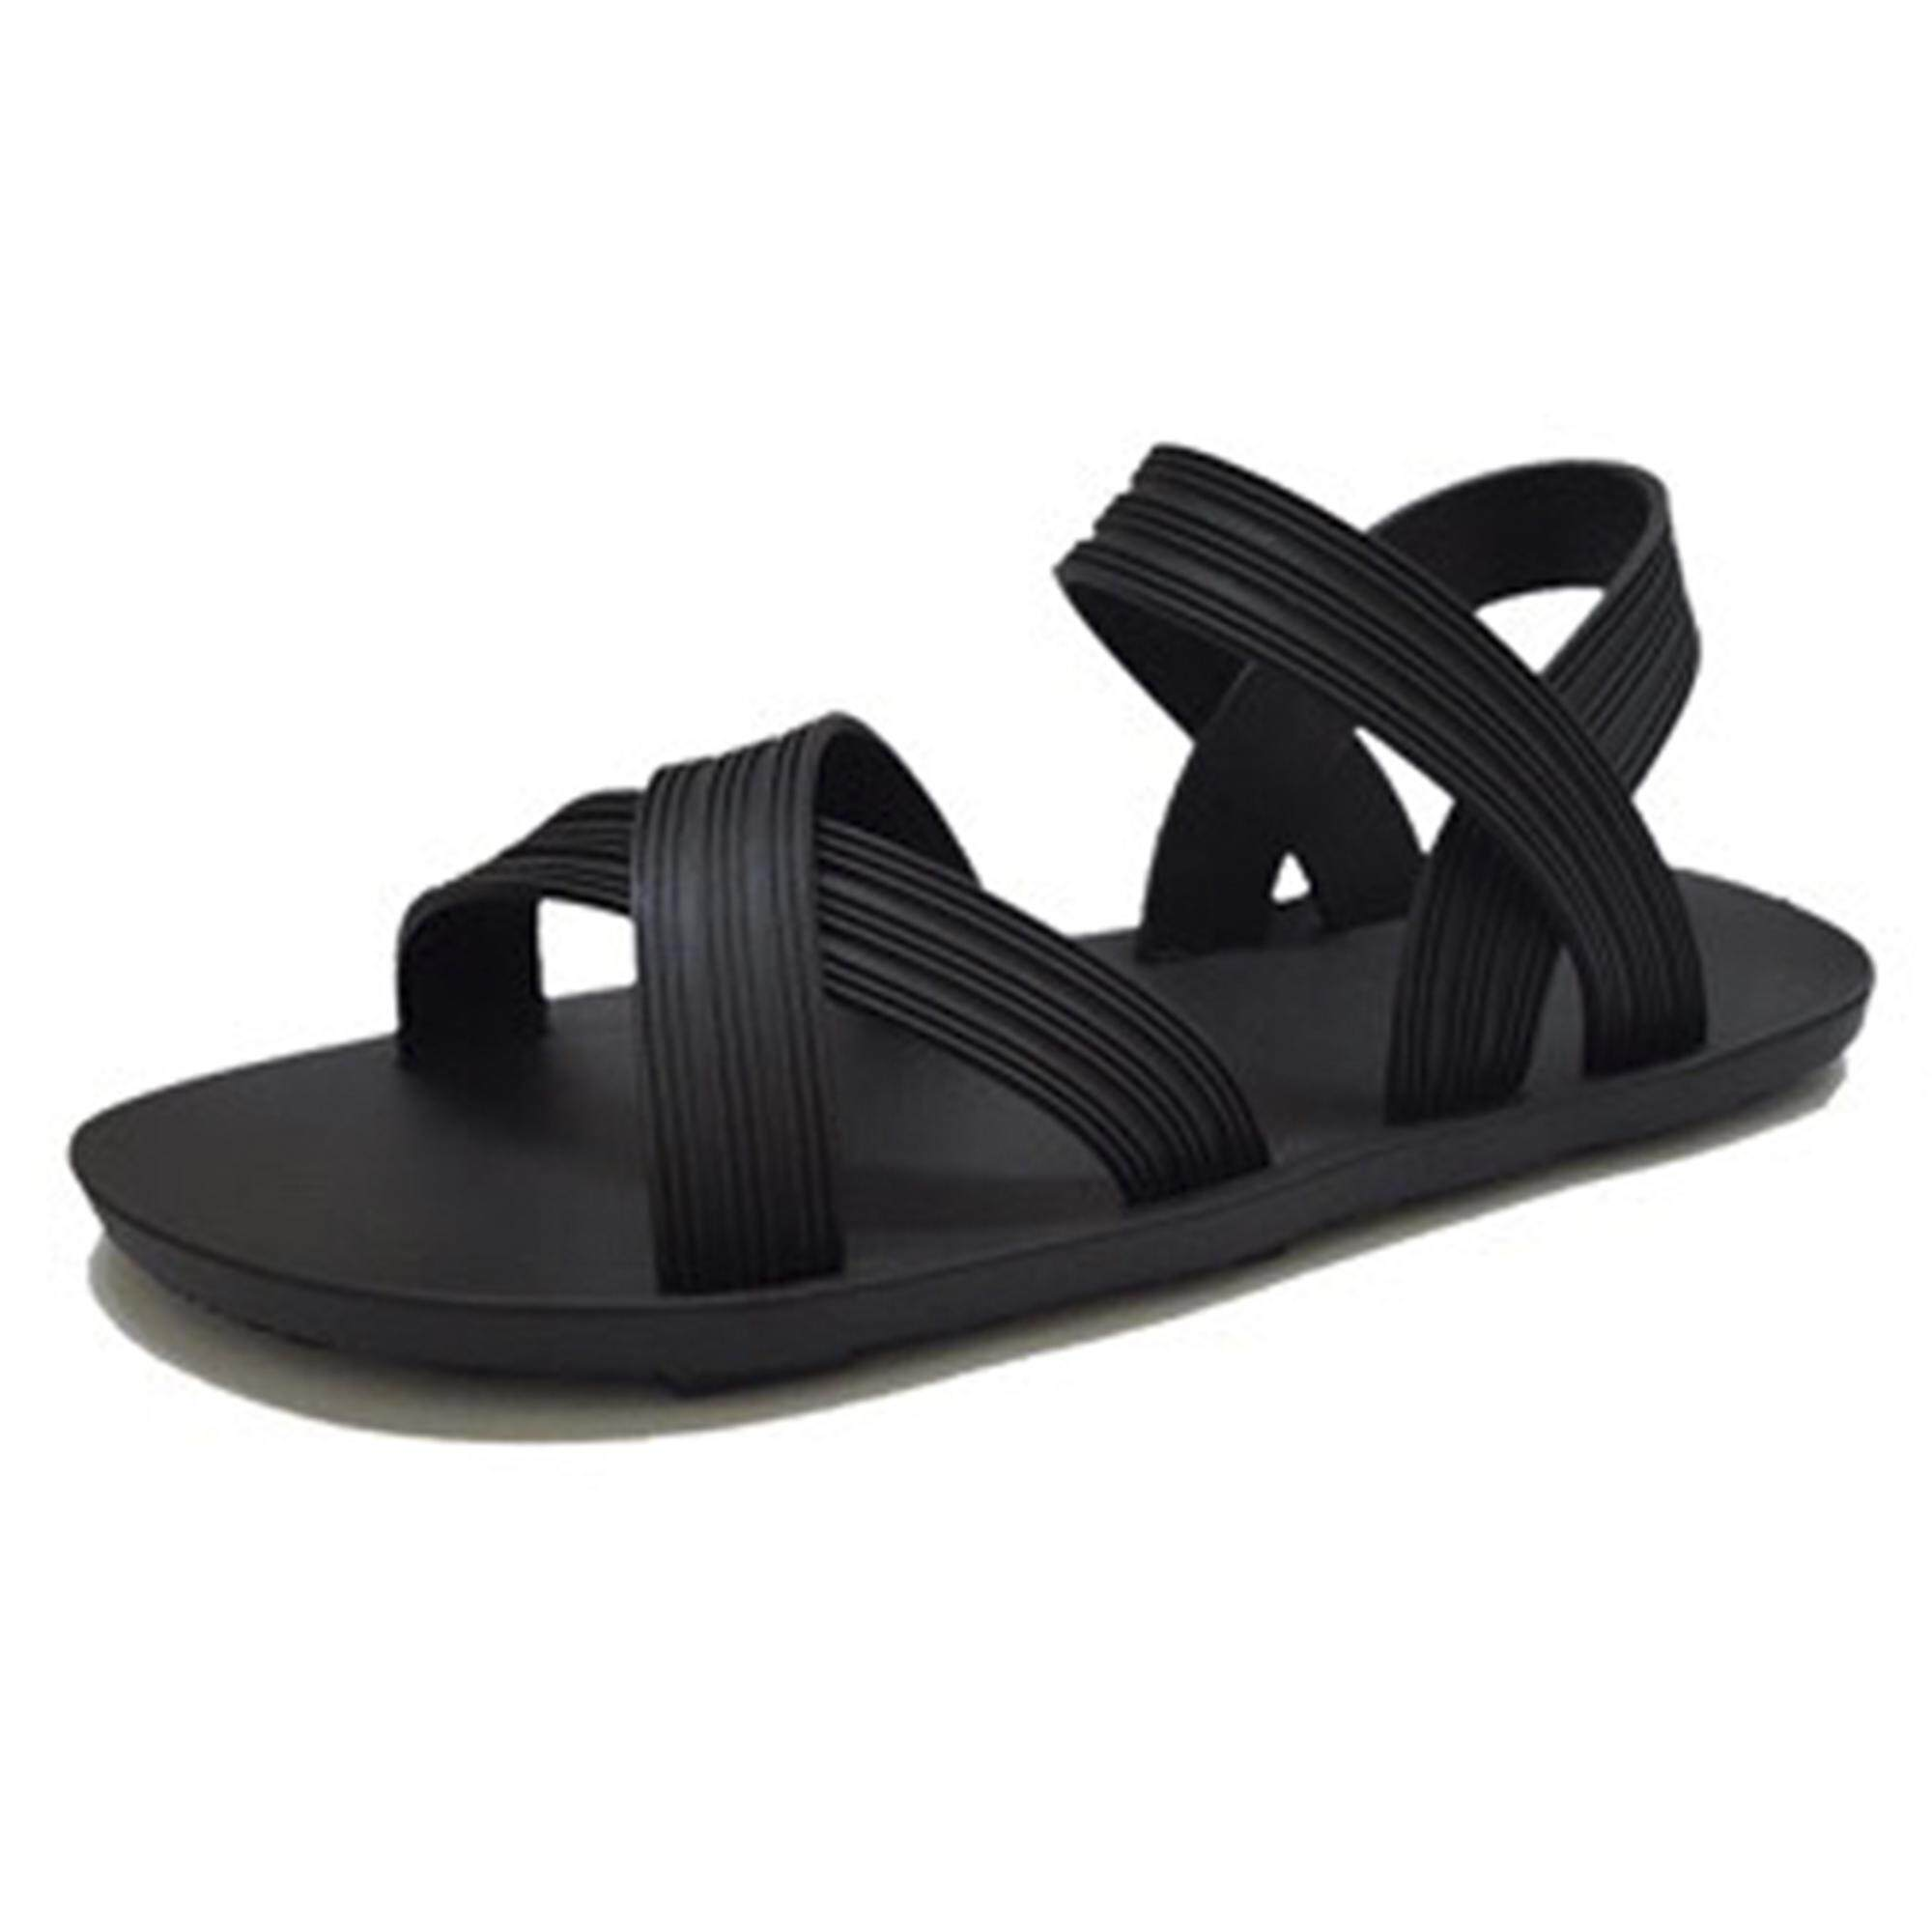 d2b7e5b54 Buy Sandals for Women Online at Best Prices in Malaysia